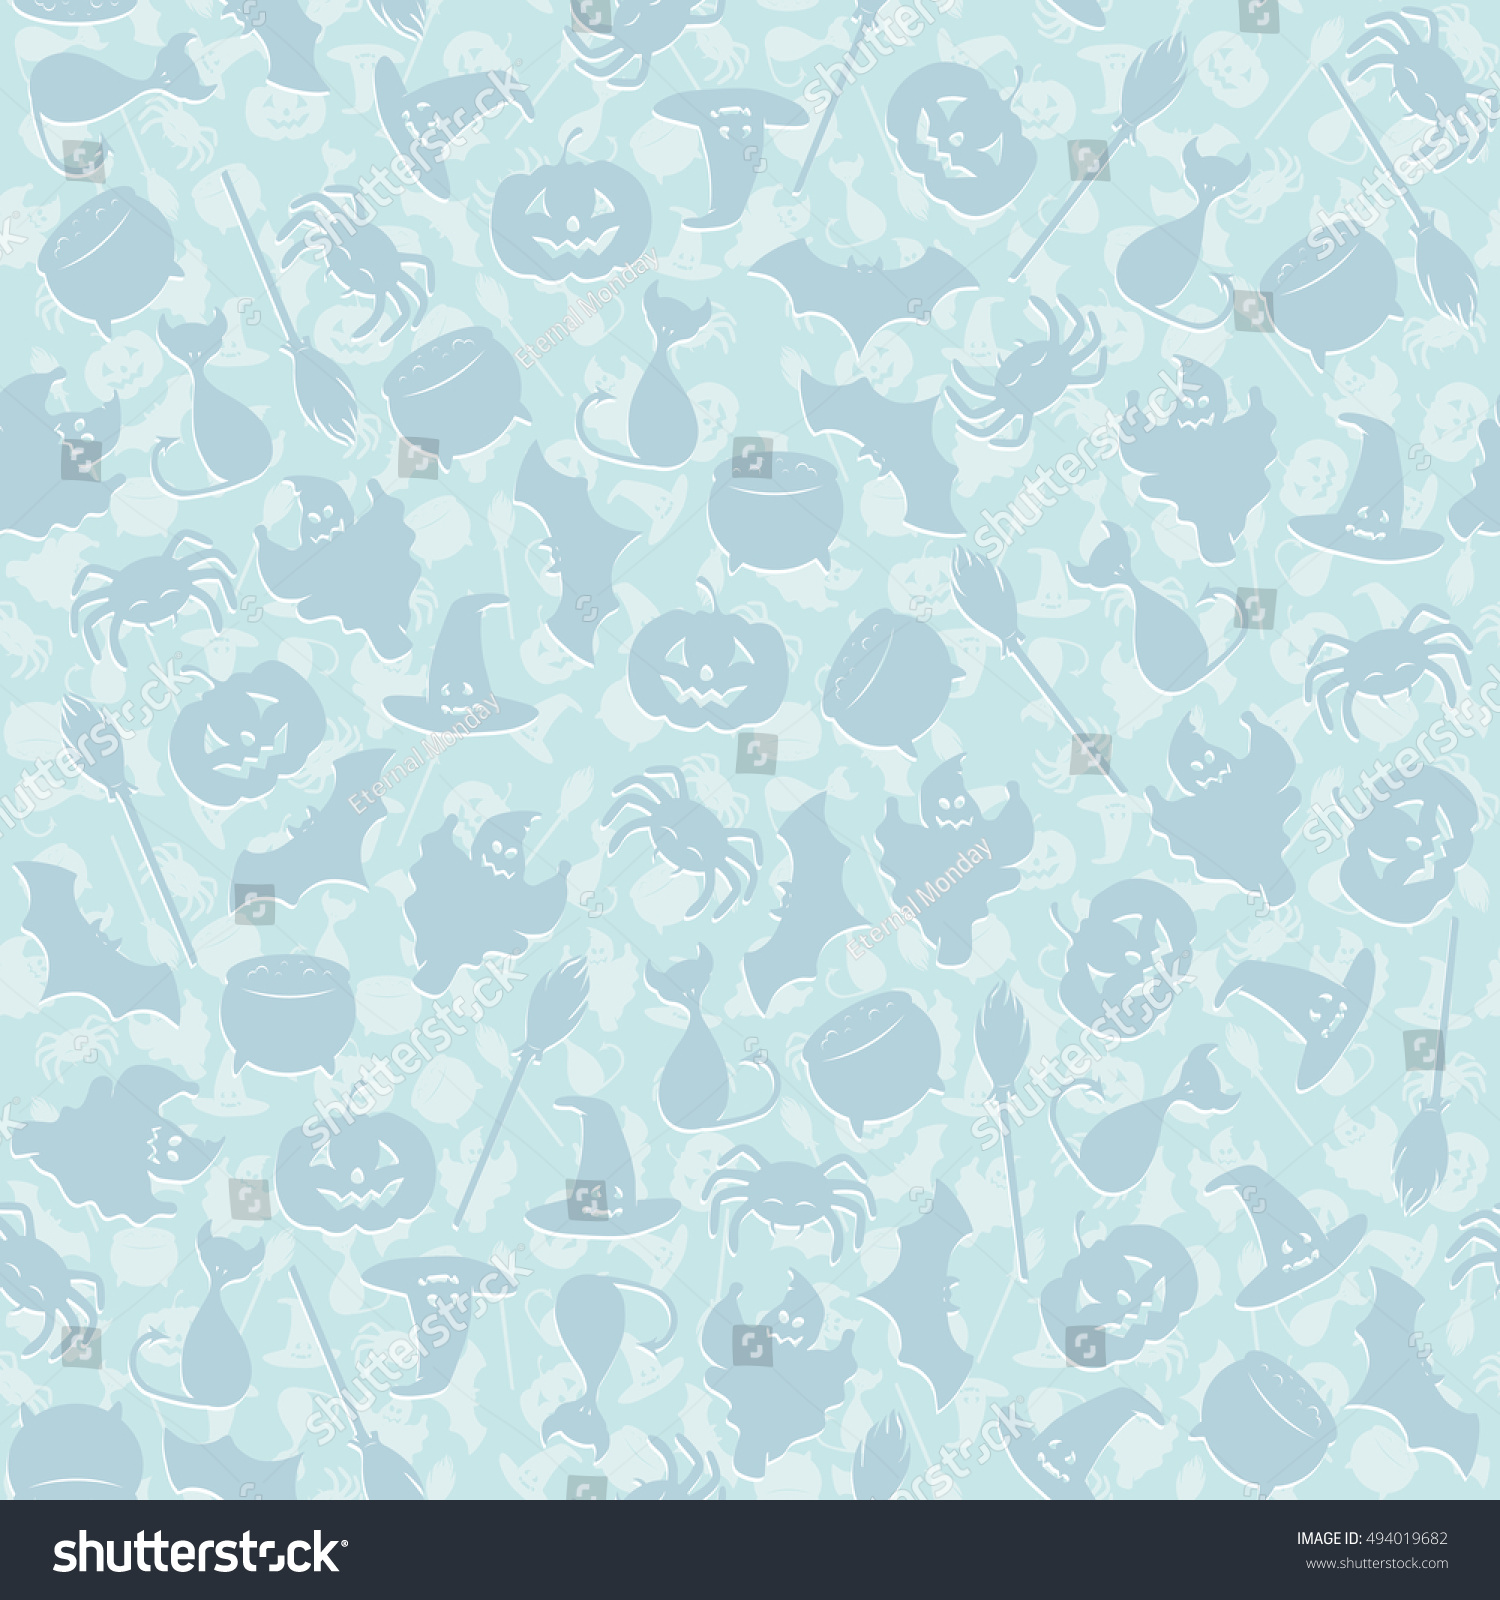 Great Wallpaper Halloween Pastel - stock-vector-seamless-pattern-background-with-halloween-characters-in-pastel-blue-colors-cat-bat-pumpkin-494019682  2018_169321.jpg